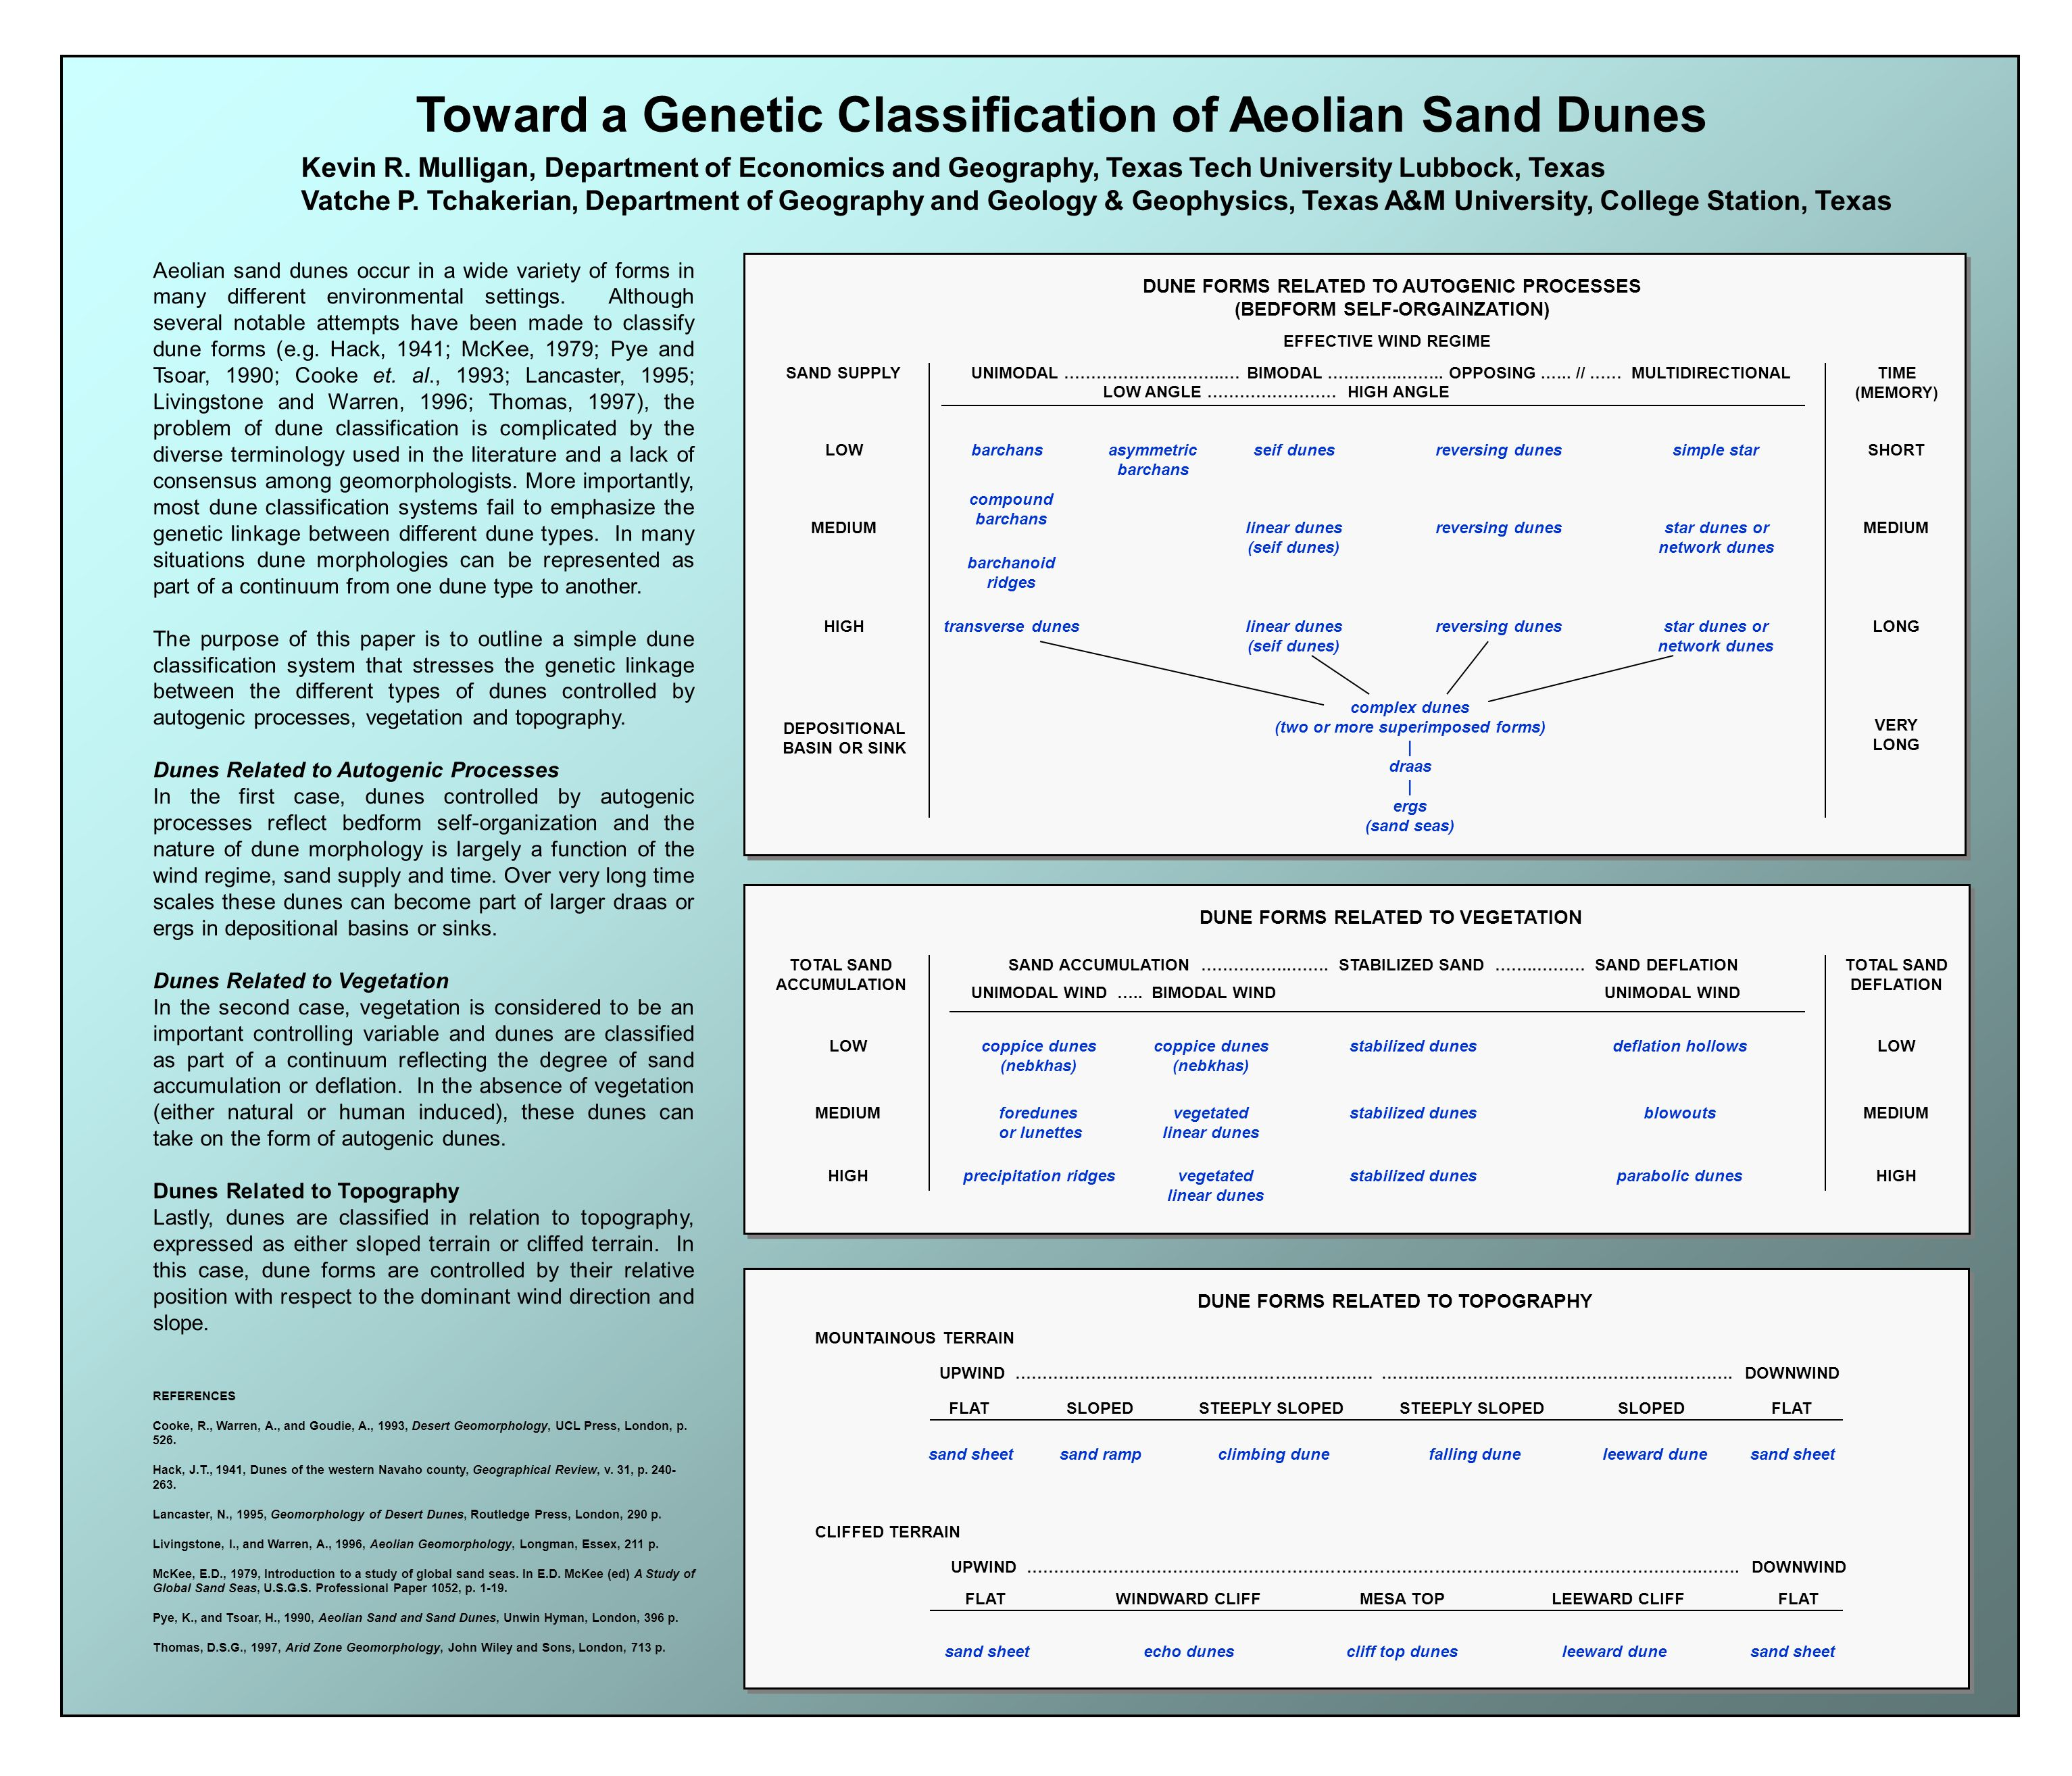 Toward a Genetic Classification of Aeolian Sand Dunes